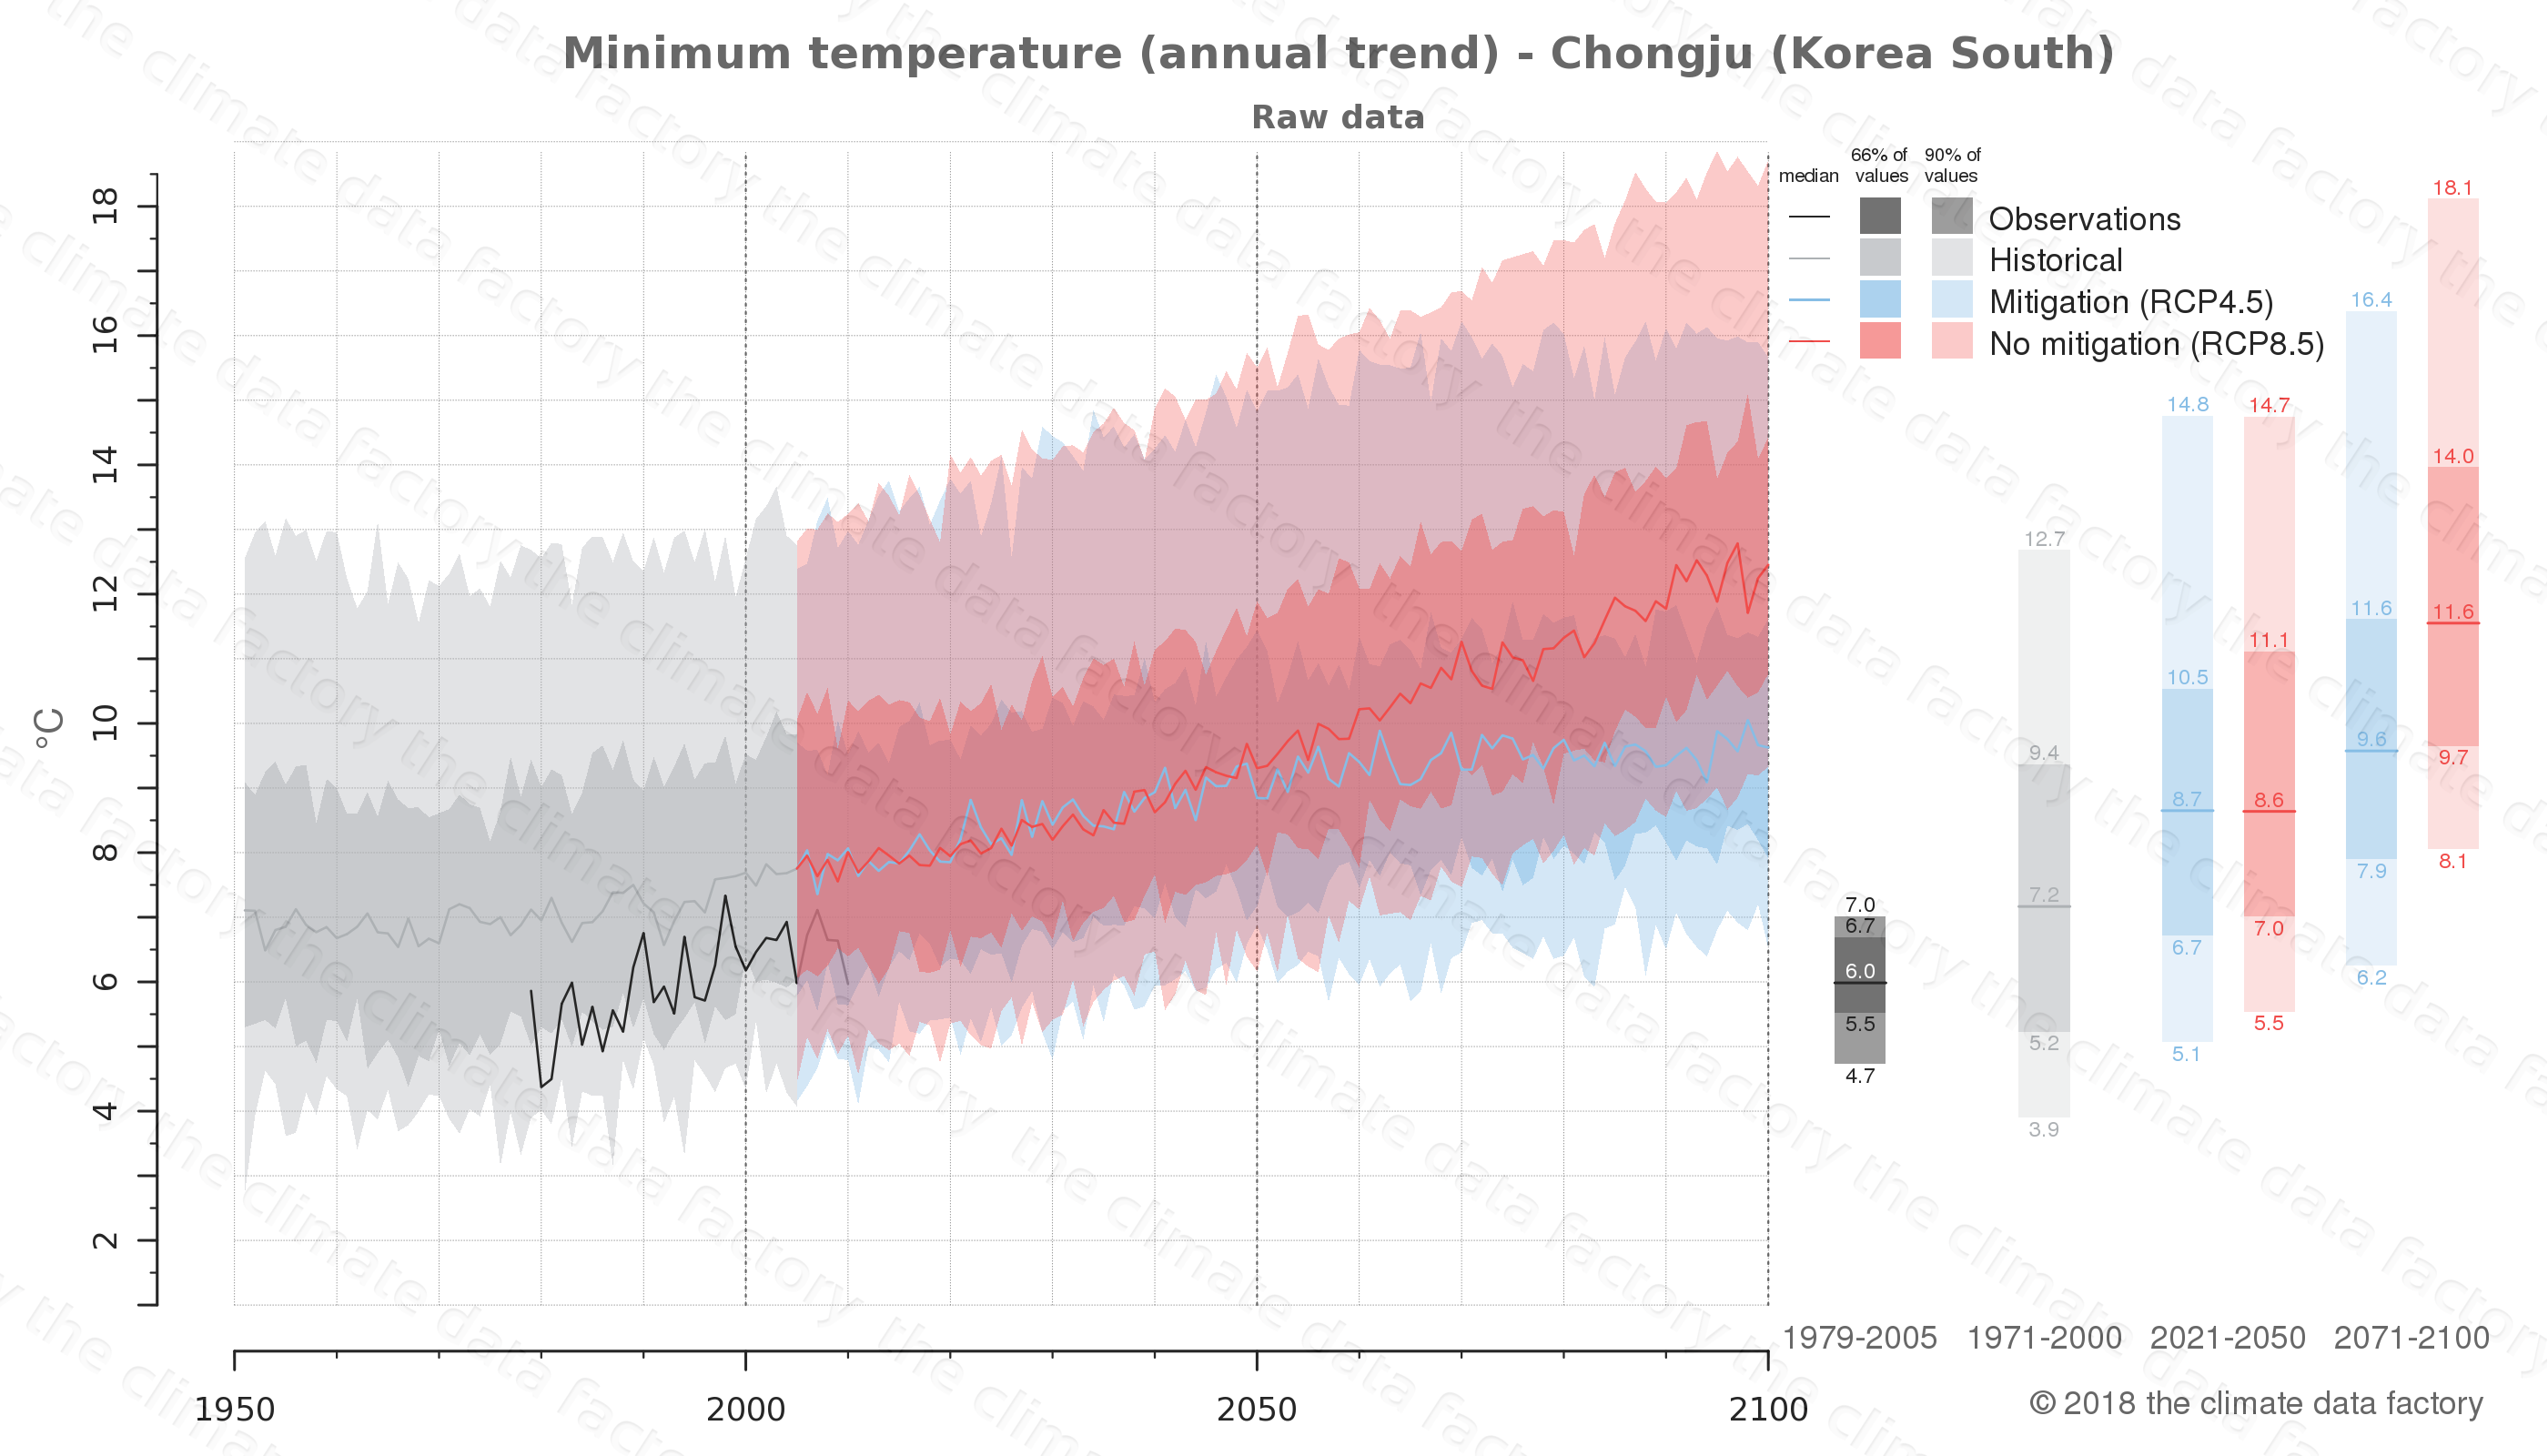 climate change data policy adaptation climate graph city data minimum-temperature chongju south korea